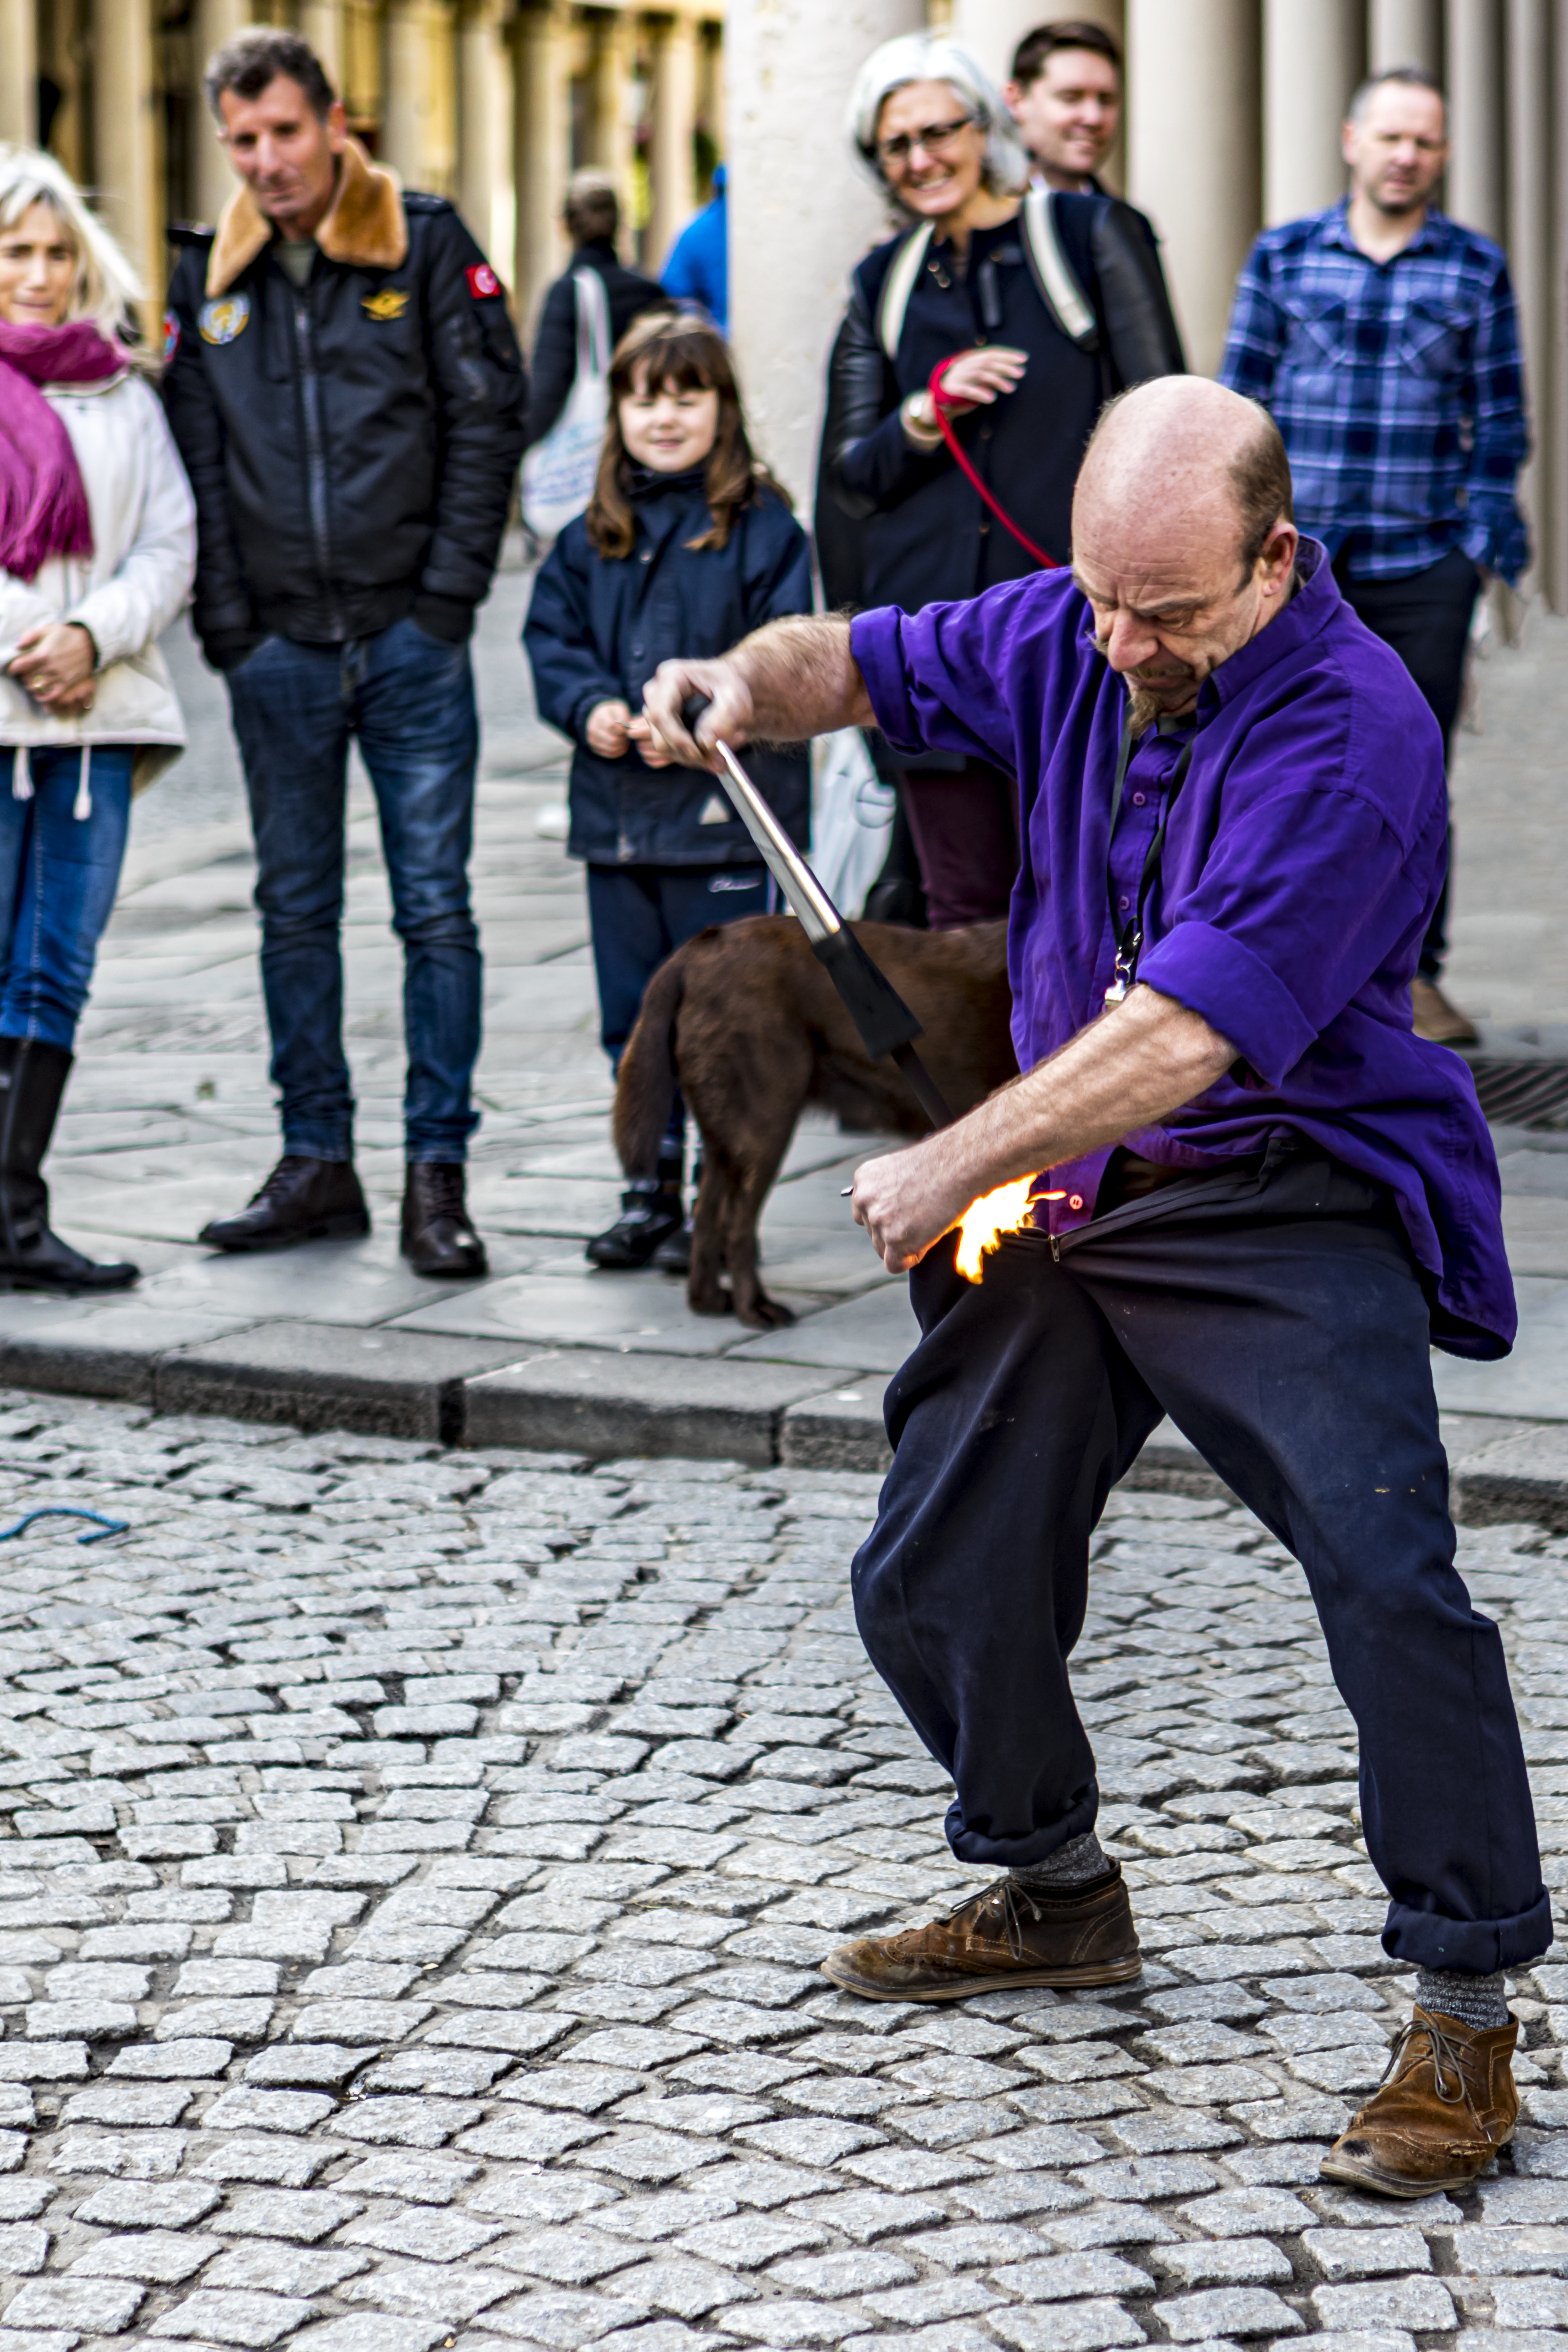 Street performer playing with fire in front of an audience. Bath, England, UK, January 2020.